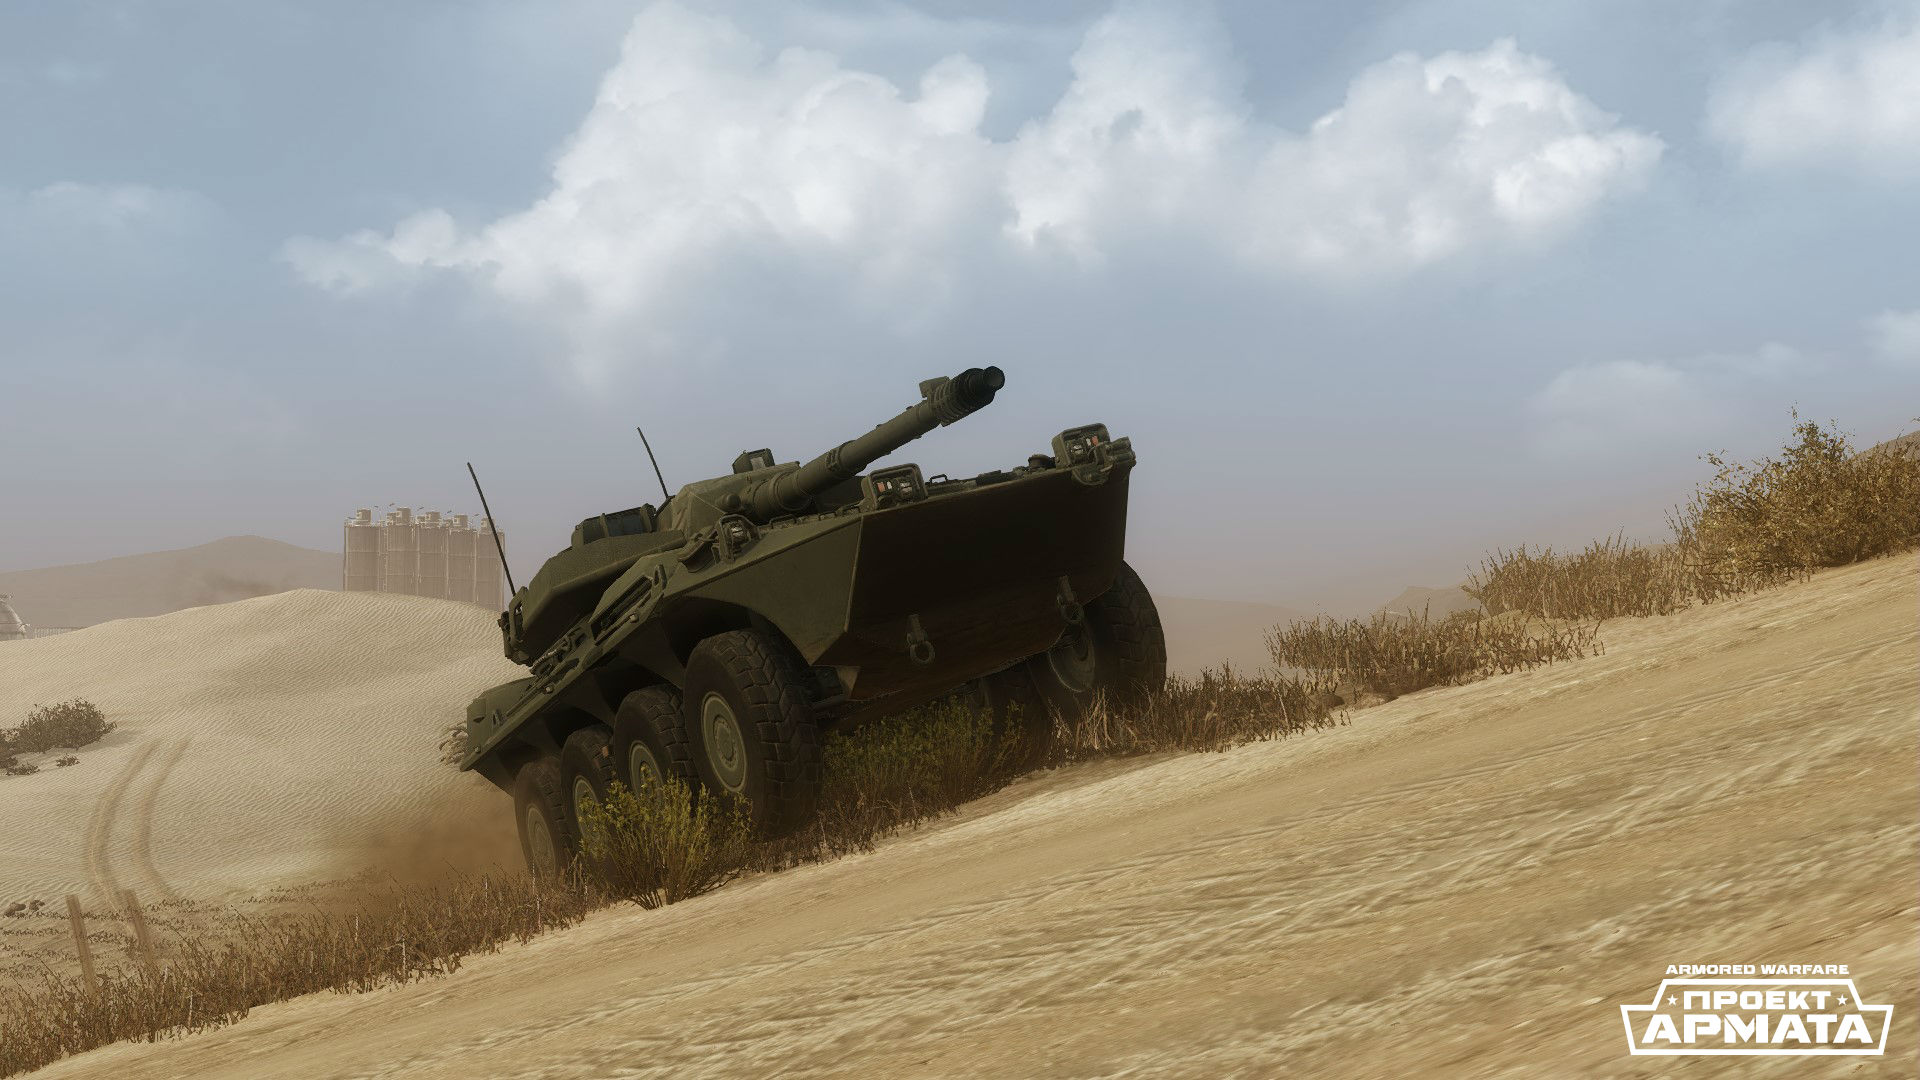 istrebiteli-tankov-armored-warfare-2